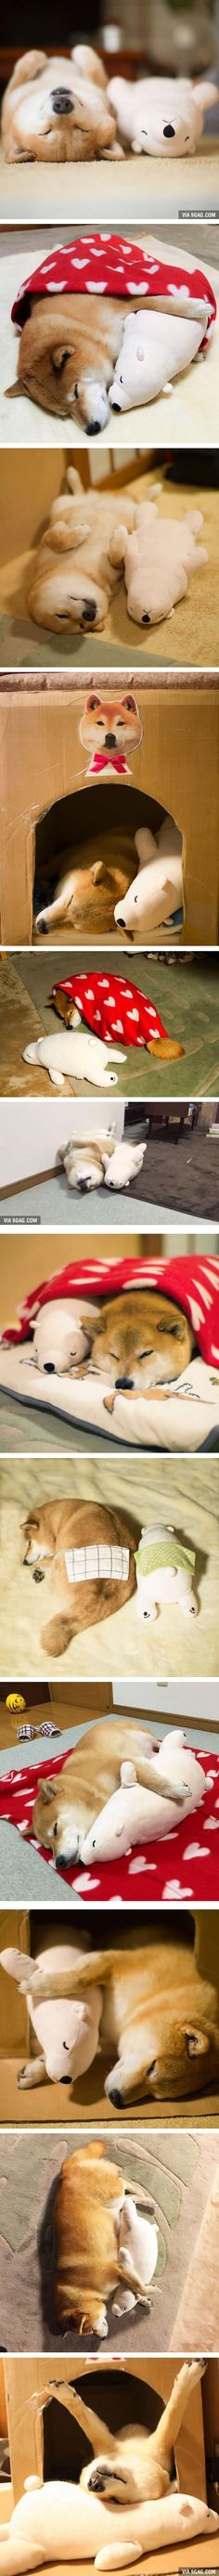 Shiba Inu Maru Loves To Sleep With His Little Stuffed Polar Bear Toy